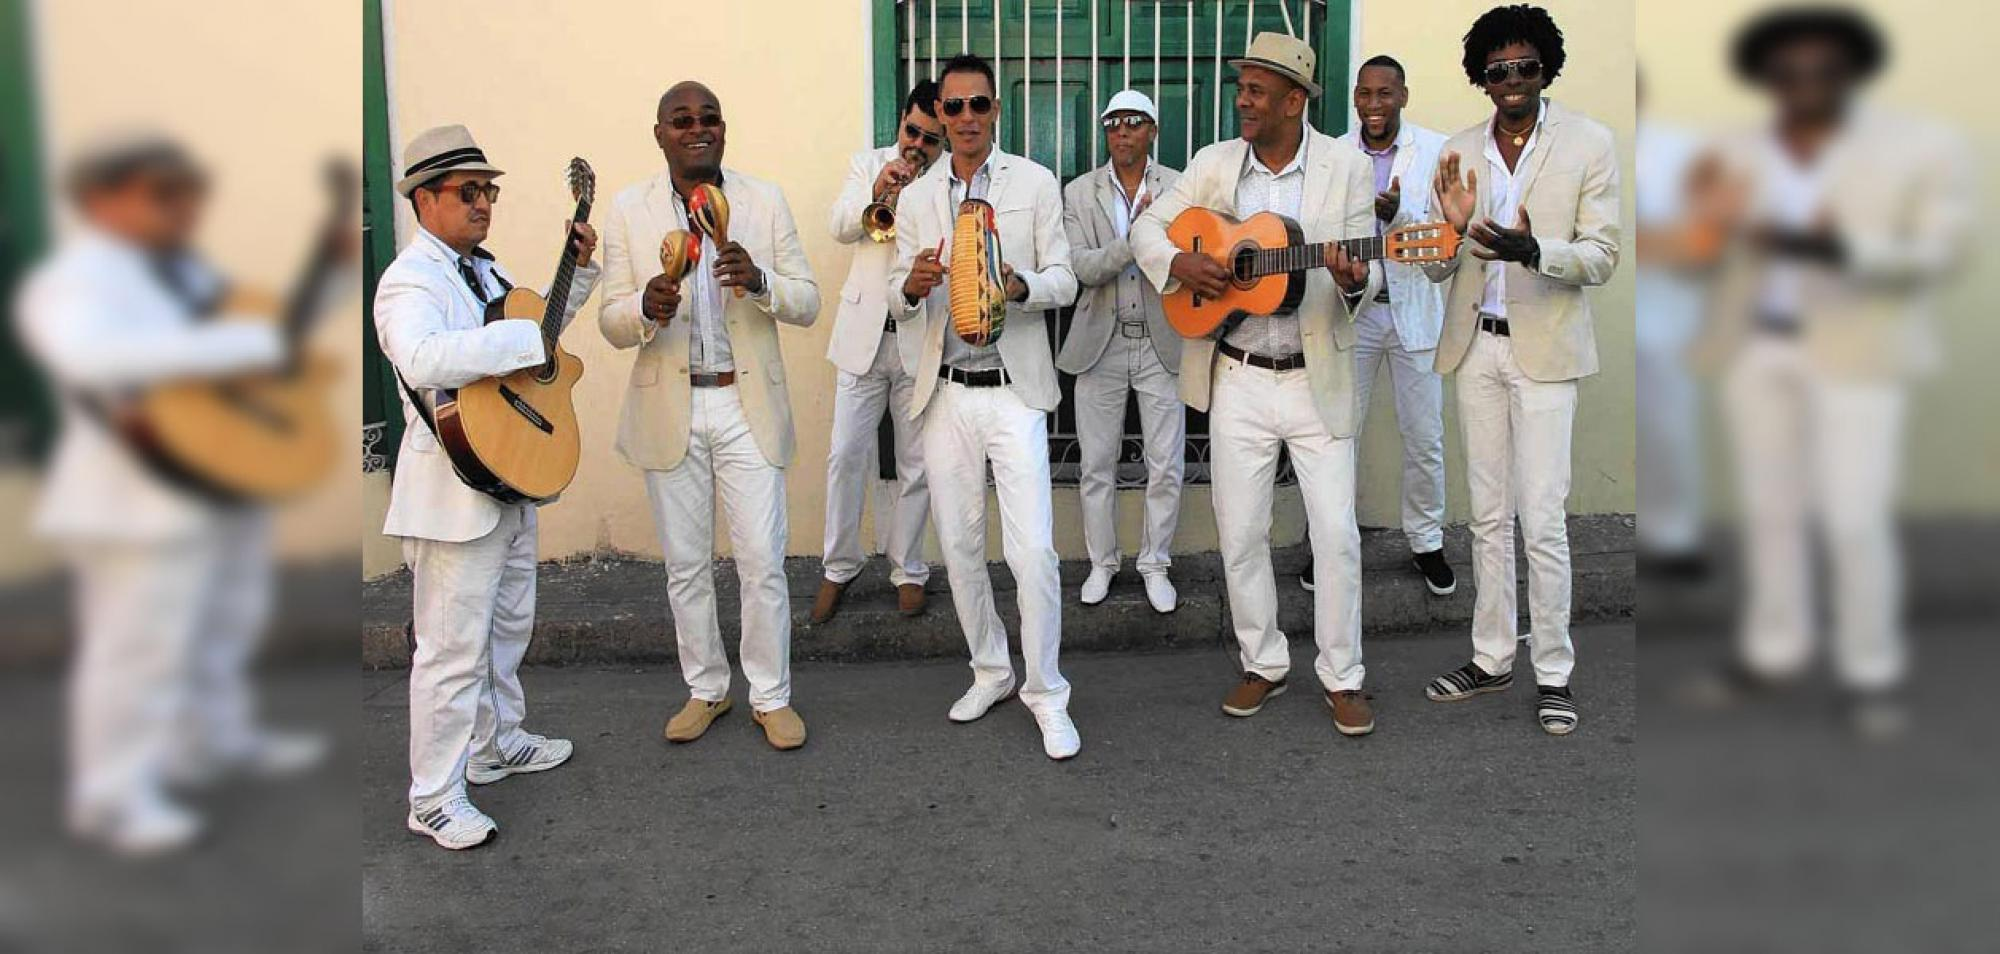 Septeto Santiaguero Wins Second Latin Grammy Award